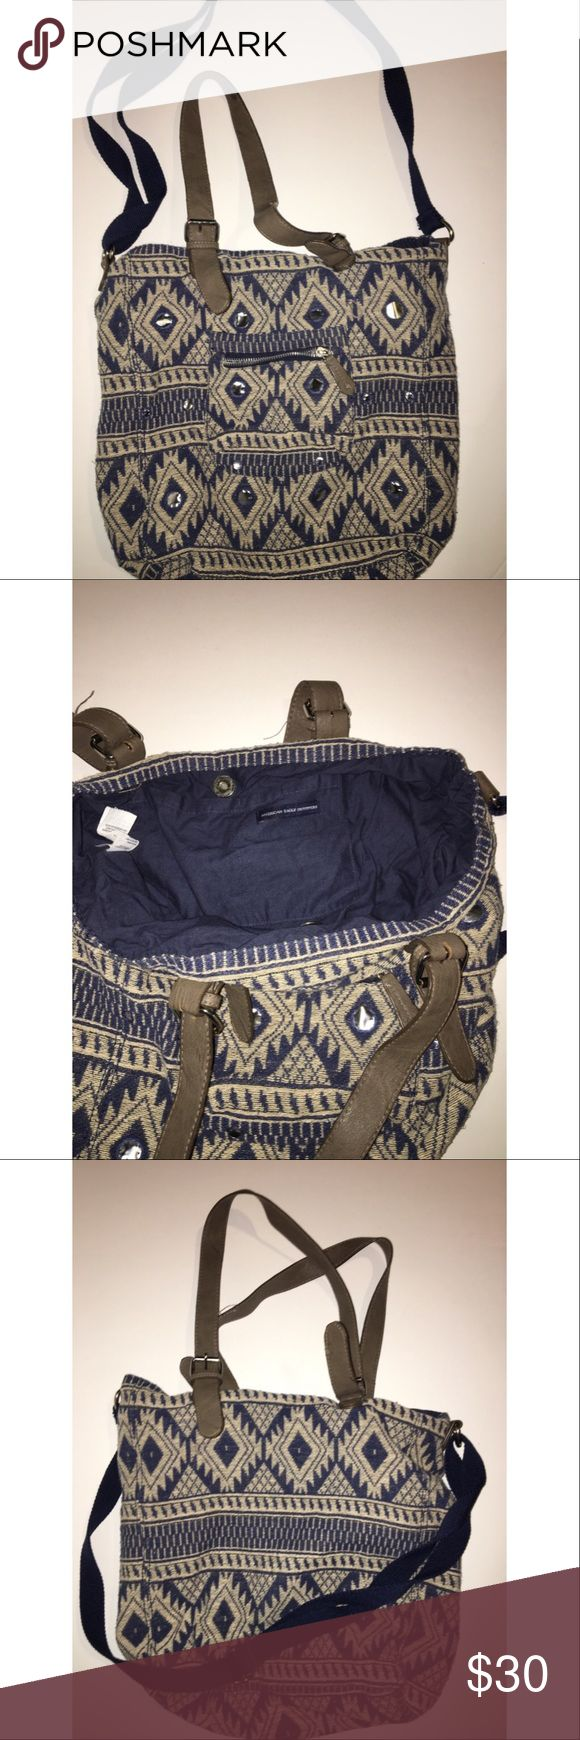 A&E tote bag Like new. Used only a few times. One pocket on the inside. Reasonless offers accepted. NO TRADES!! American Eagle Outfitters Bags Hobos